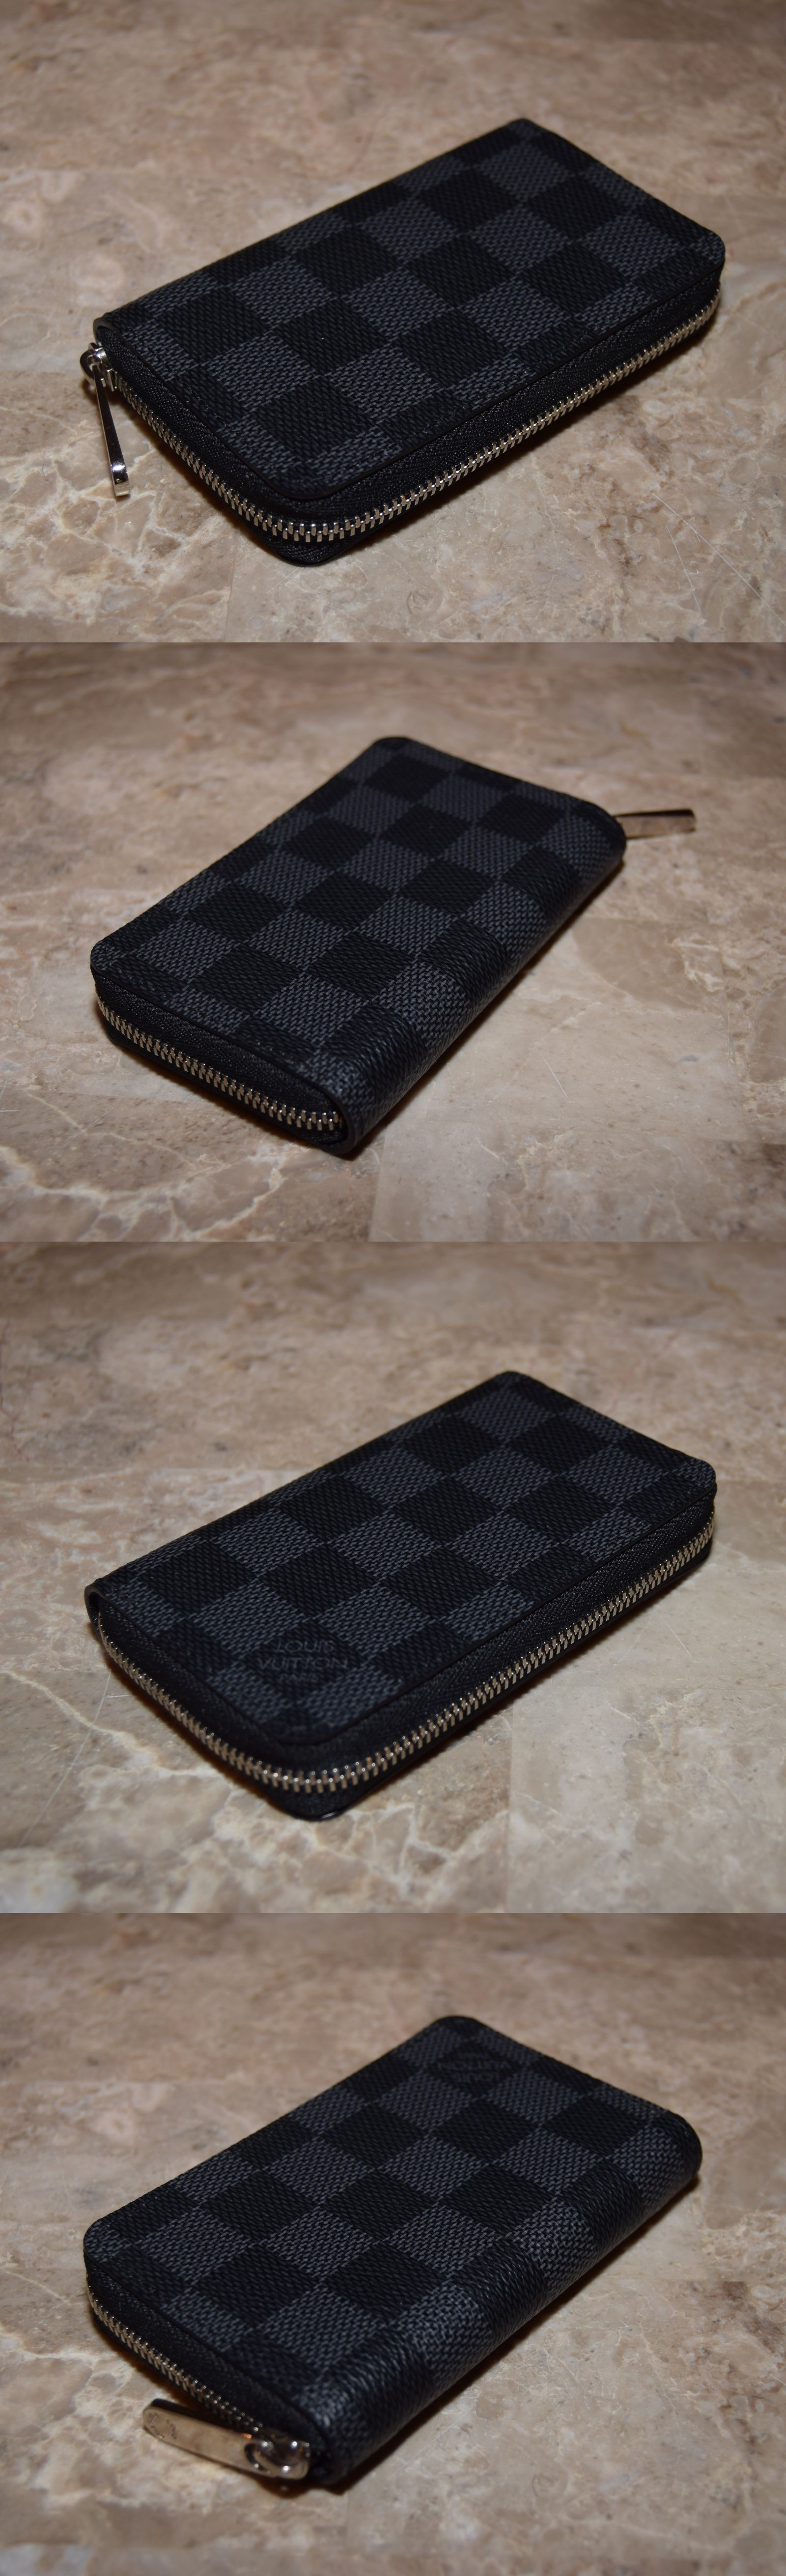 Wallets 169283  New Louis Vuitton Zippy Coin Purse Wallet Vertical Damier  Graphite Canvas N63076 -  BUY IT NOW ONLY   319 on eBay! b7c7a018c505f